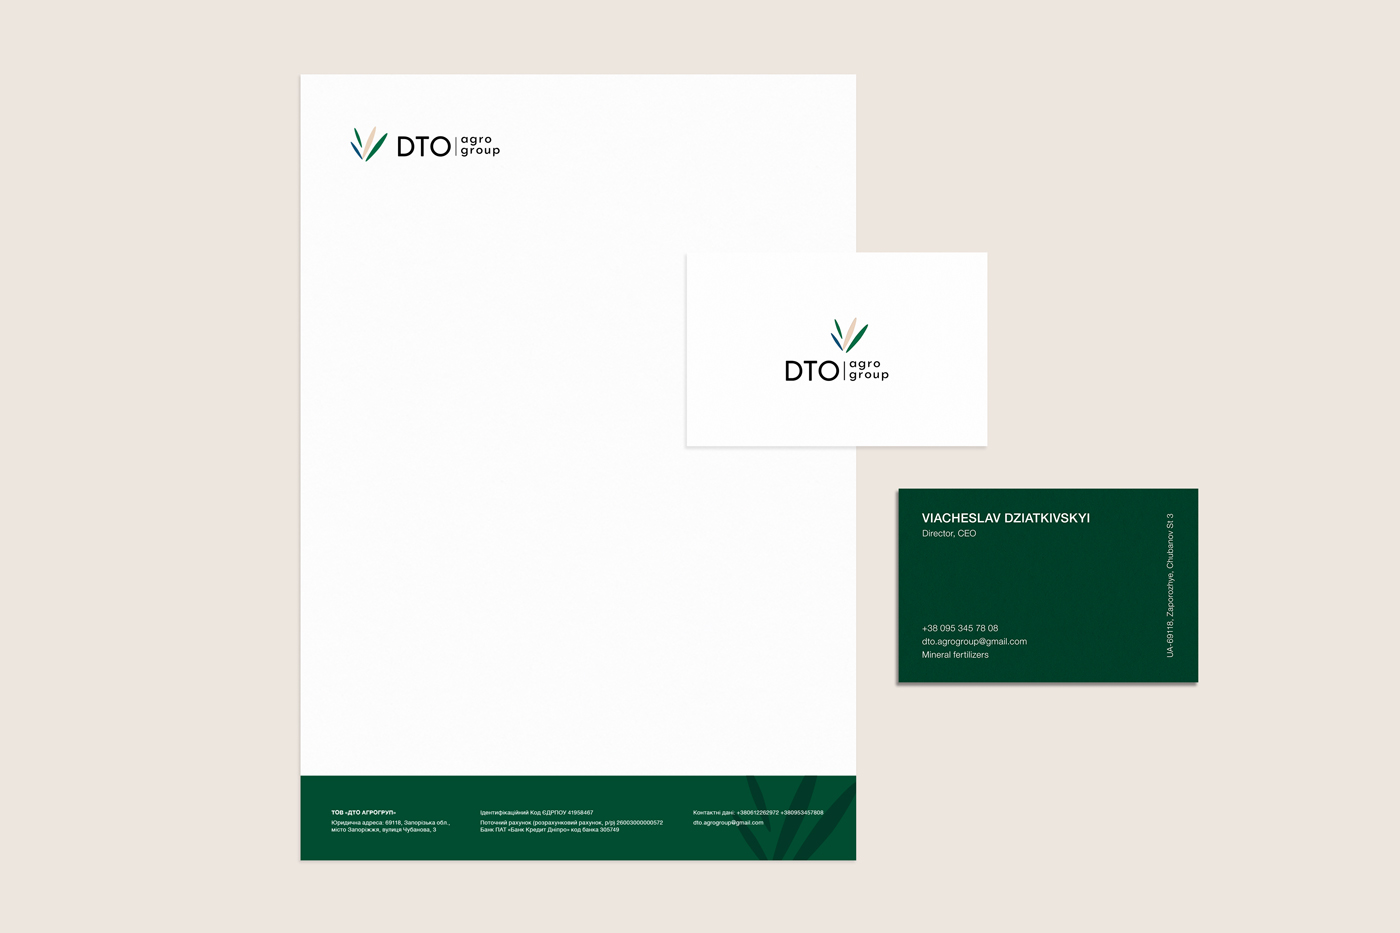 Brand identity and logo. Form and business cards for ukrainian agricultural company DTO